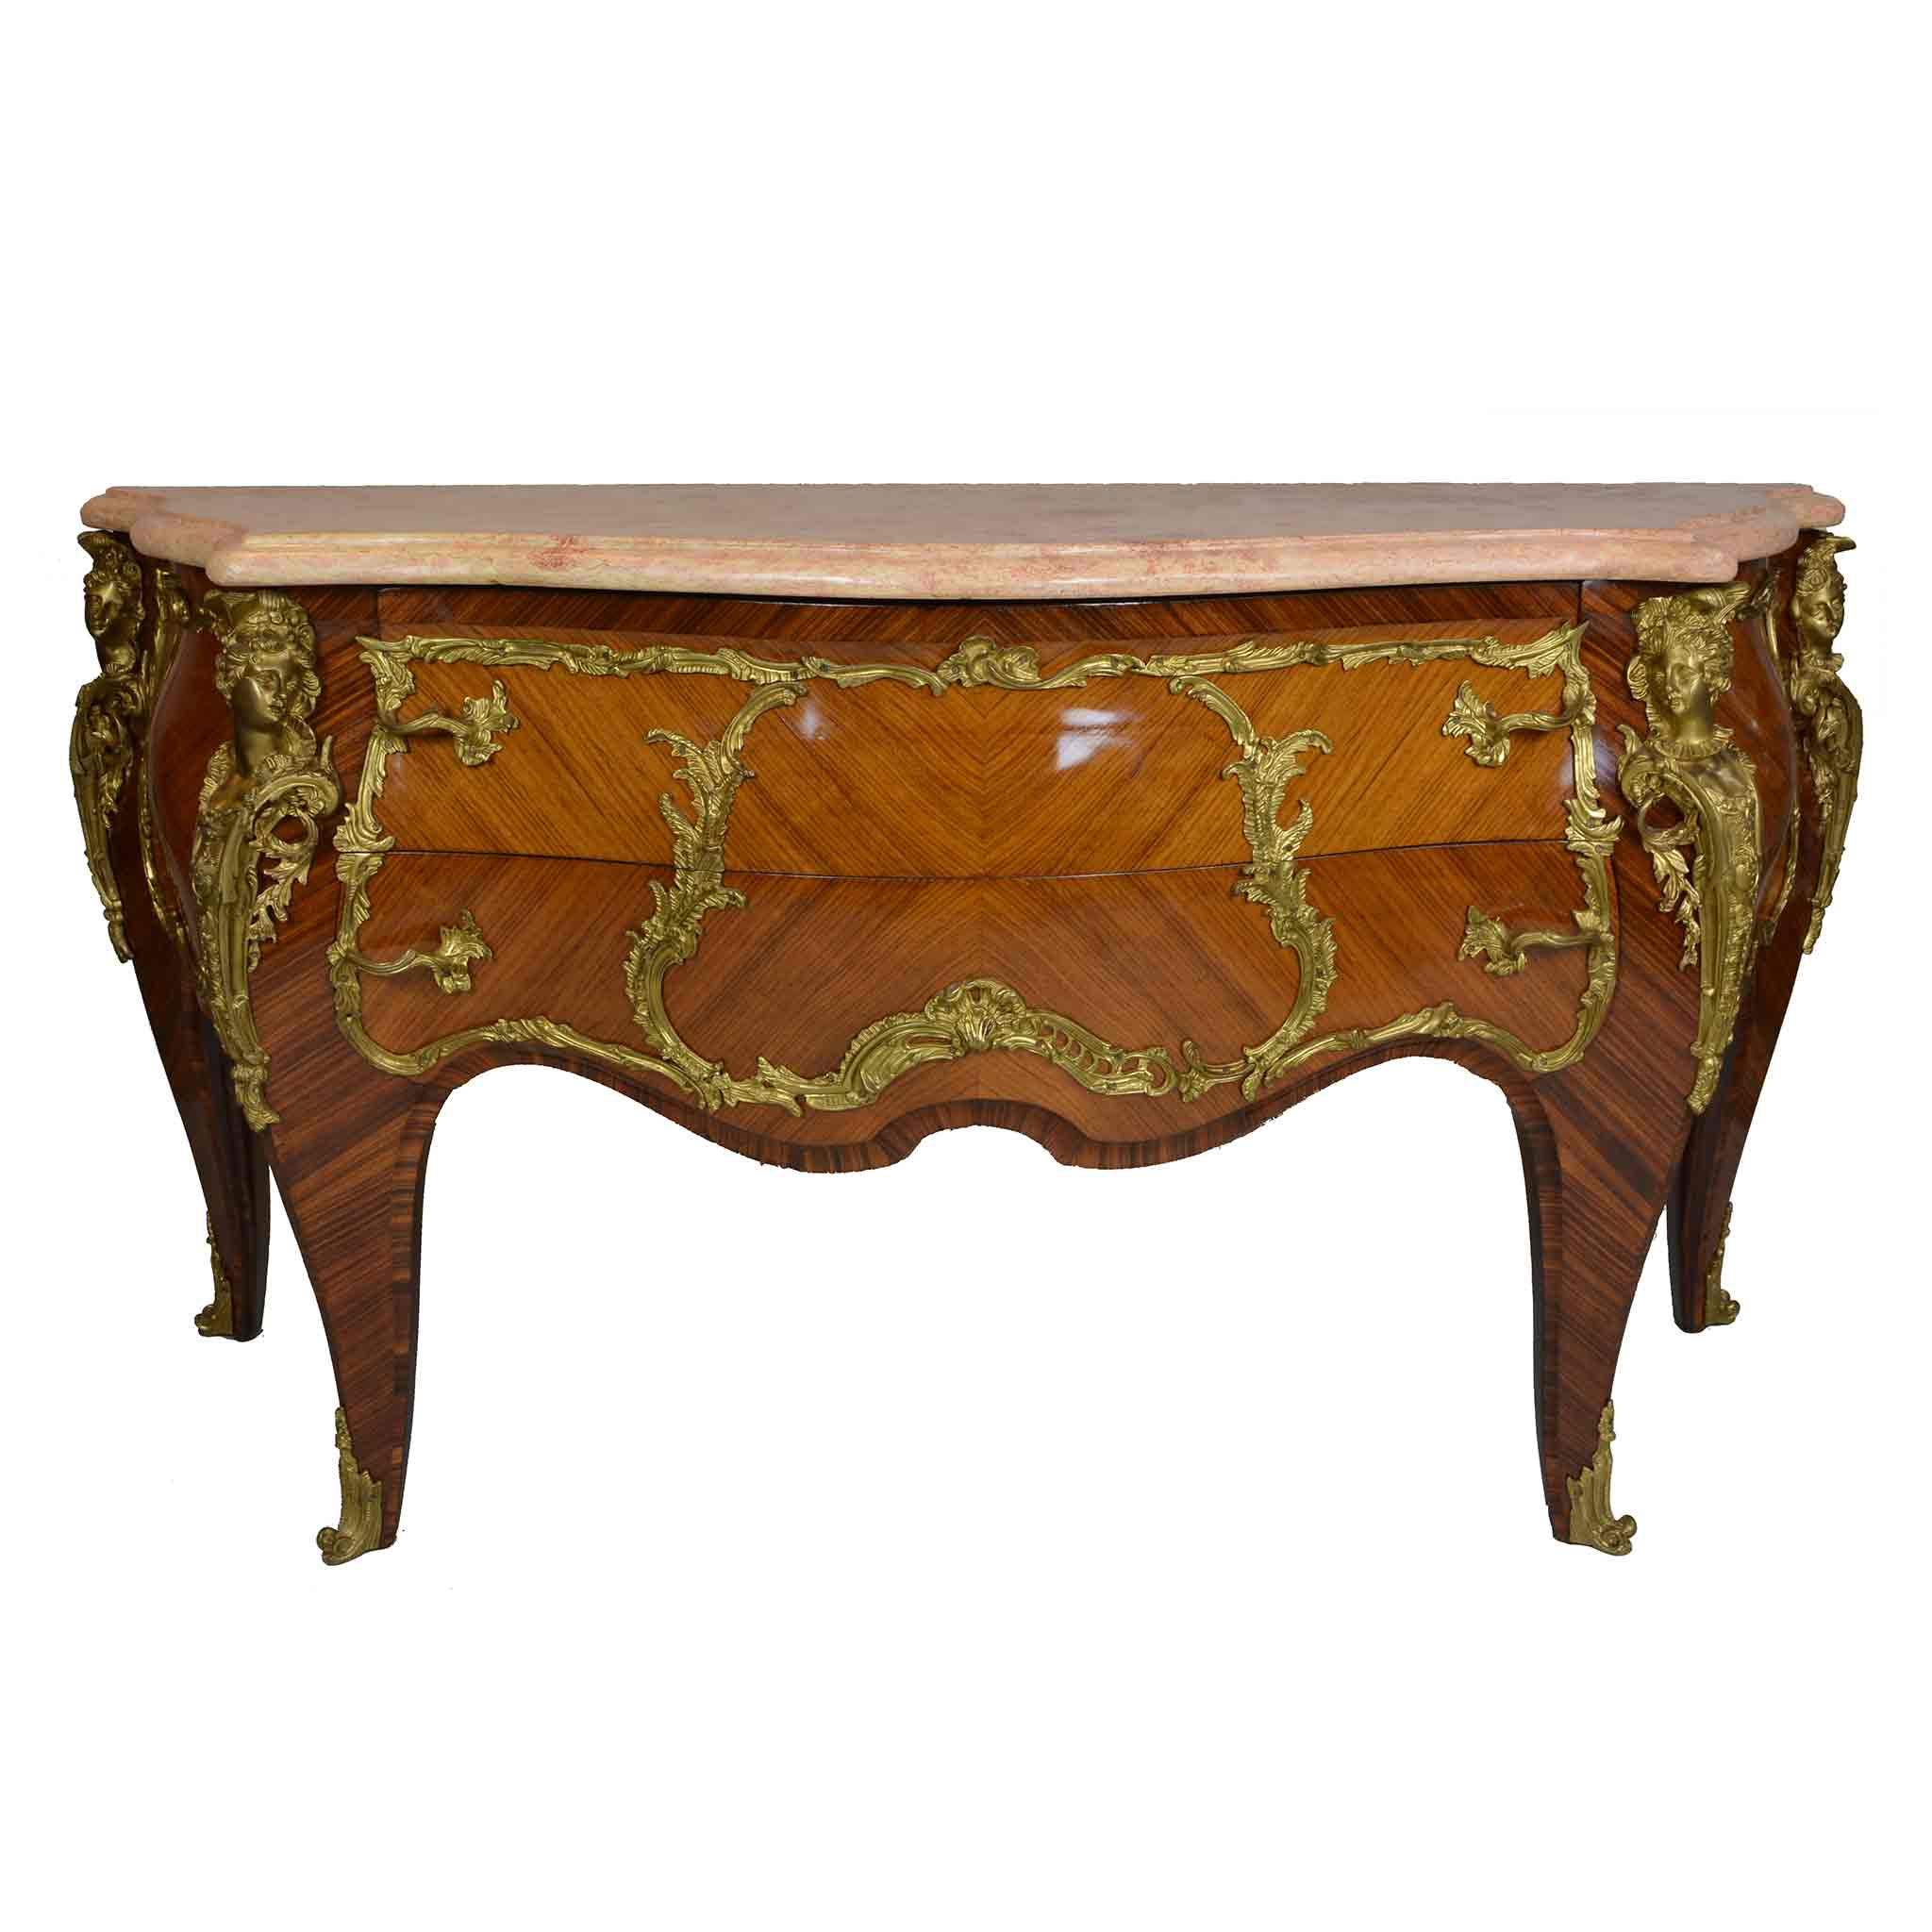 Rare Louis XV Style Gilt Bronze Mounted Marquetry Commode